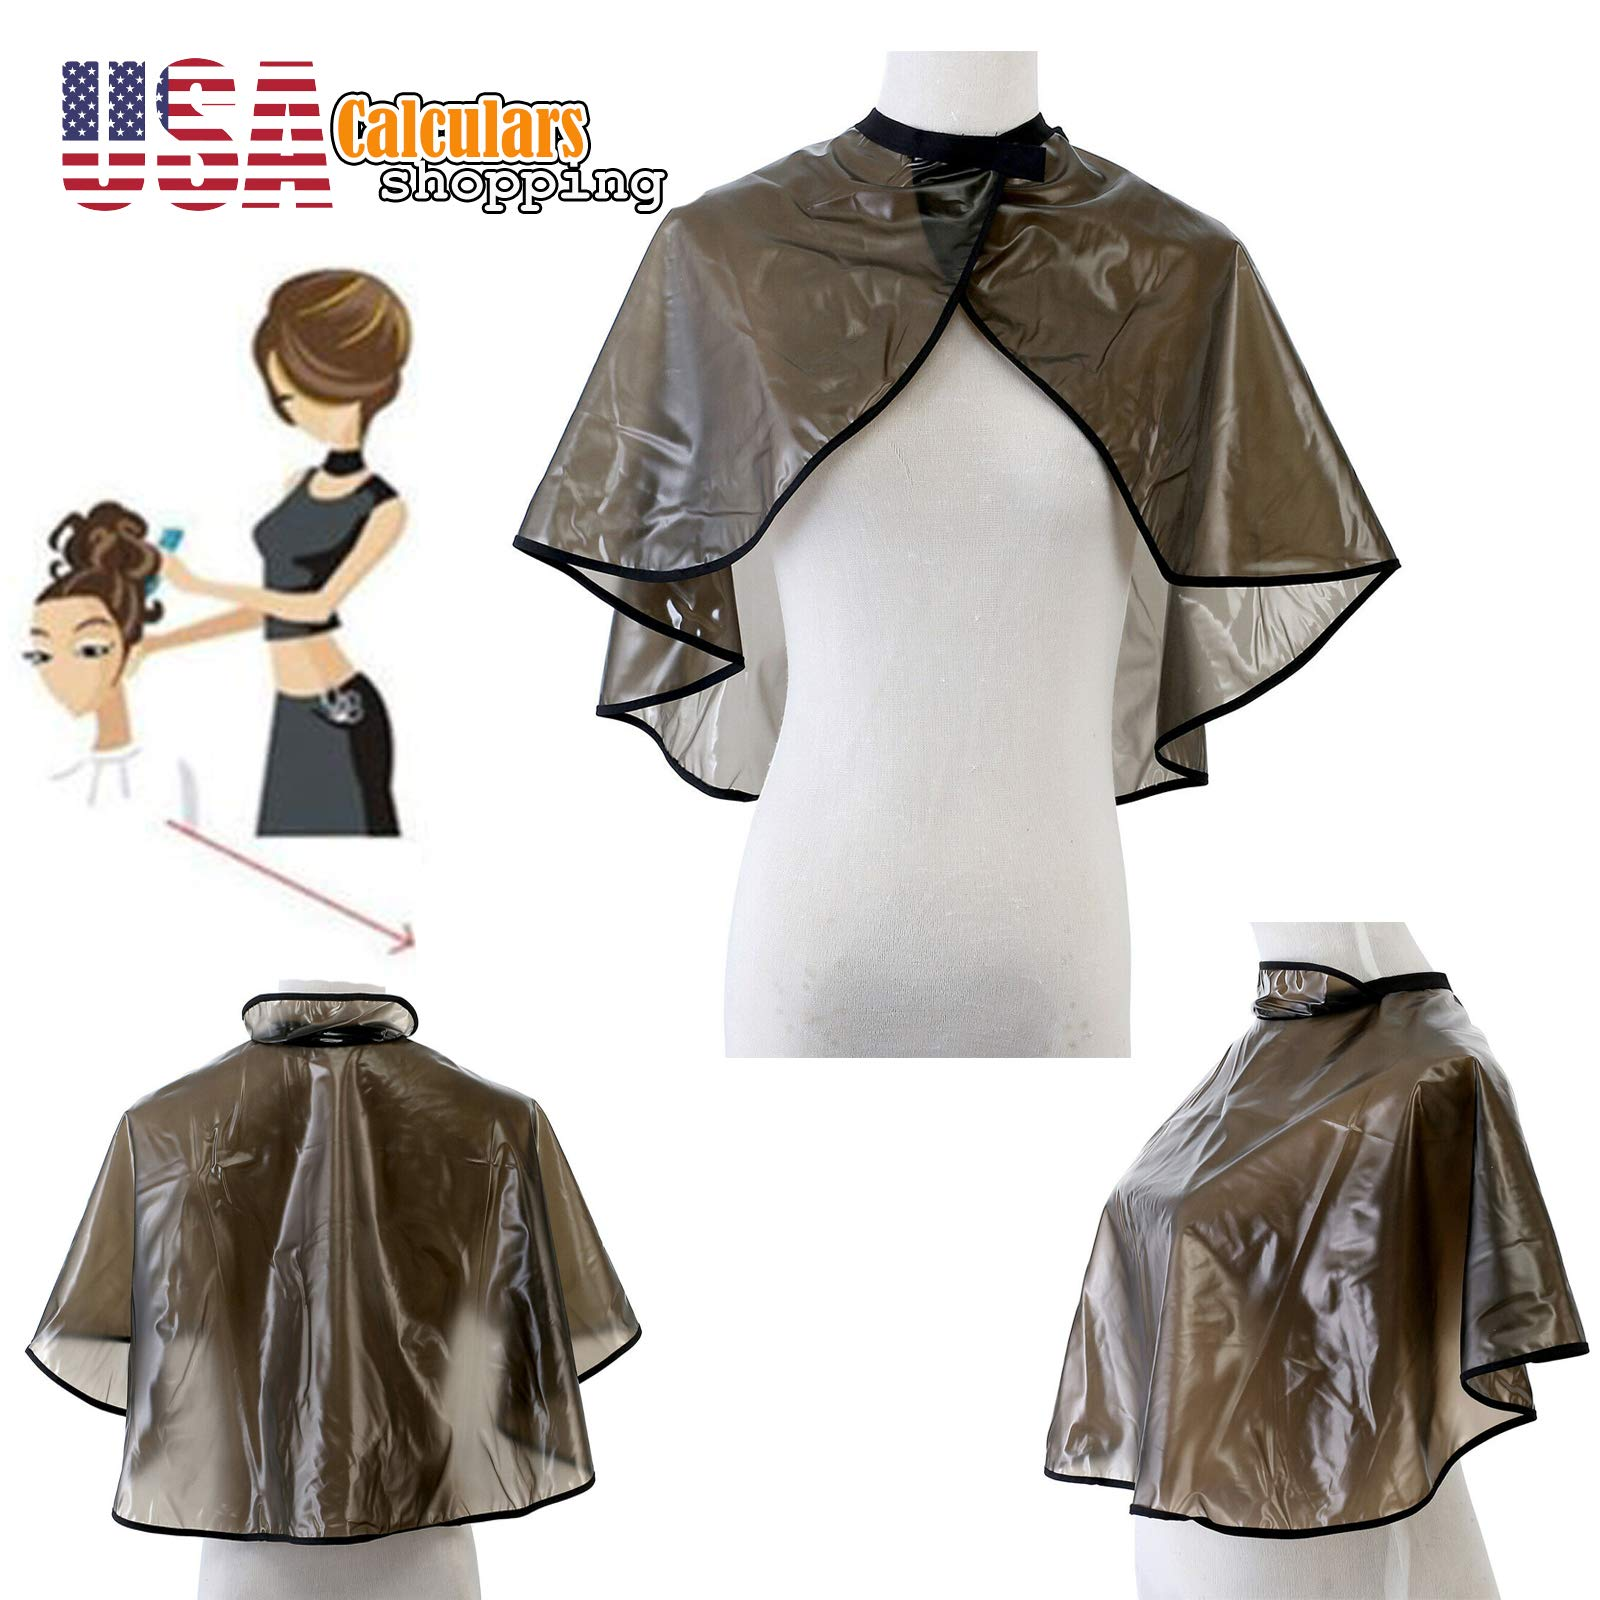 US Seller Hair Cutting Dye Cape Pro Salon Hairdressing Hairdresser Gown Barber Cloth Apron (brown) by Calculars